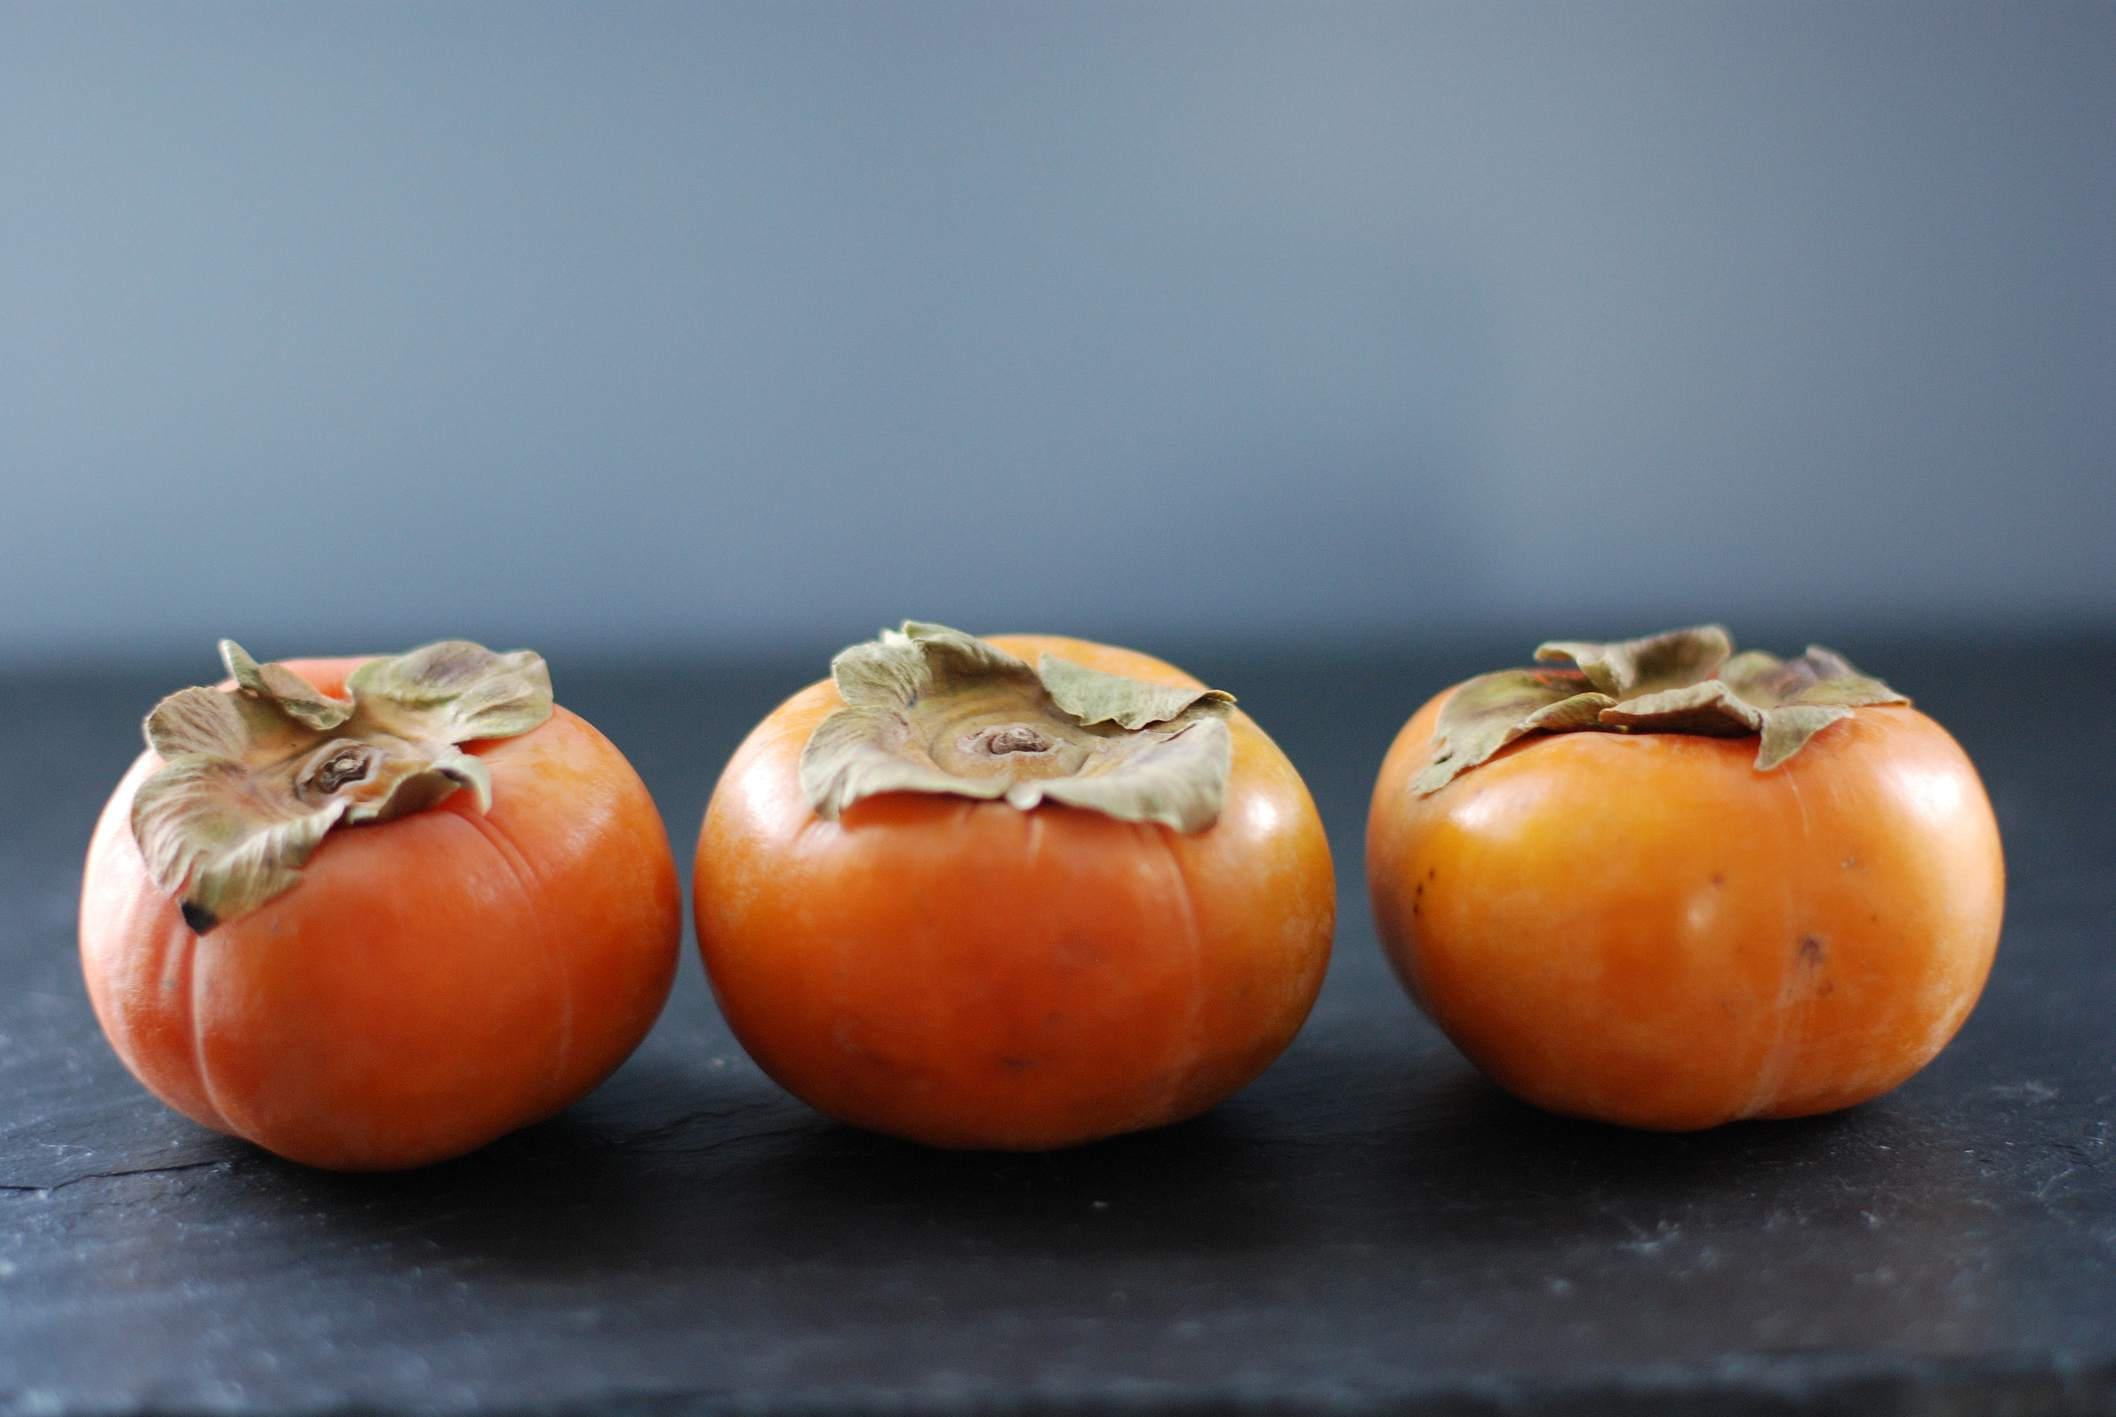 Fuyu persimmons on a counter